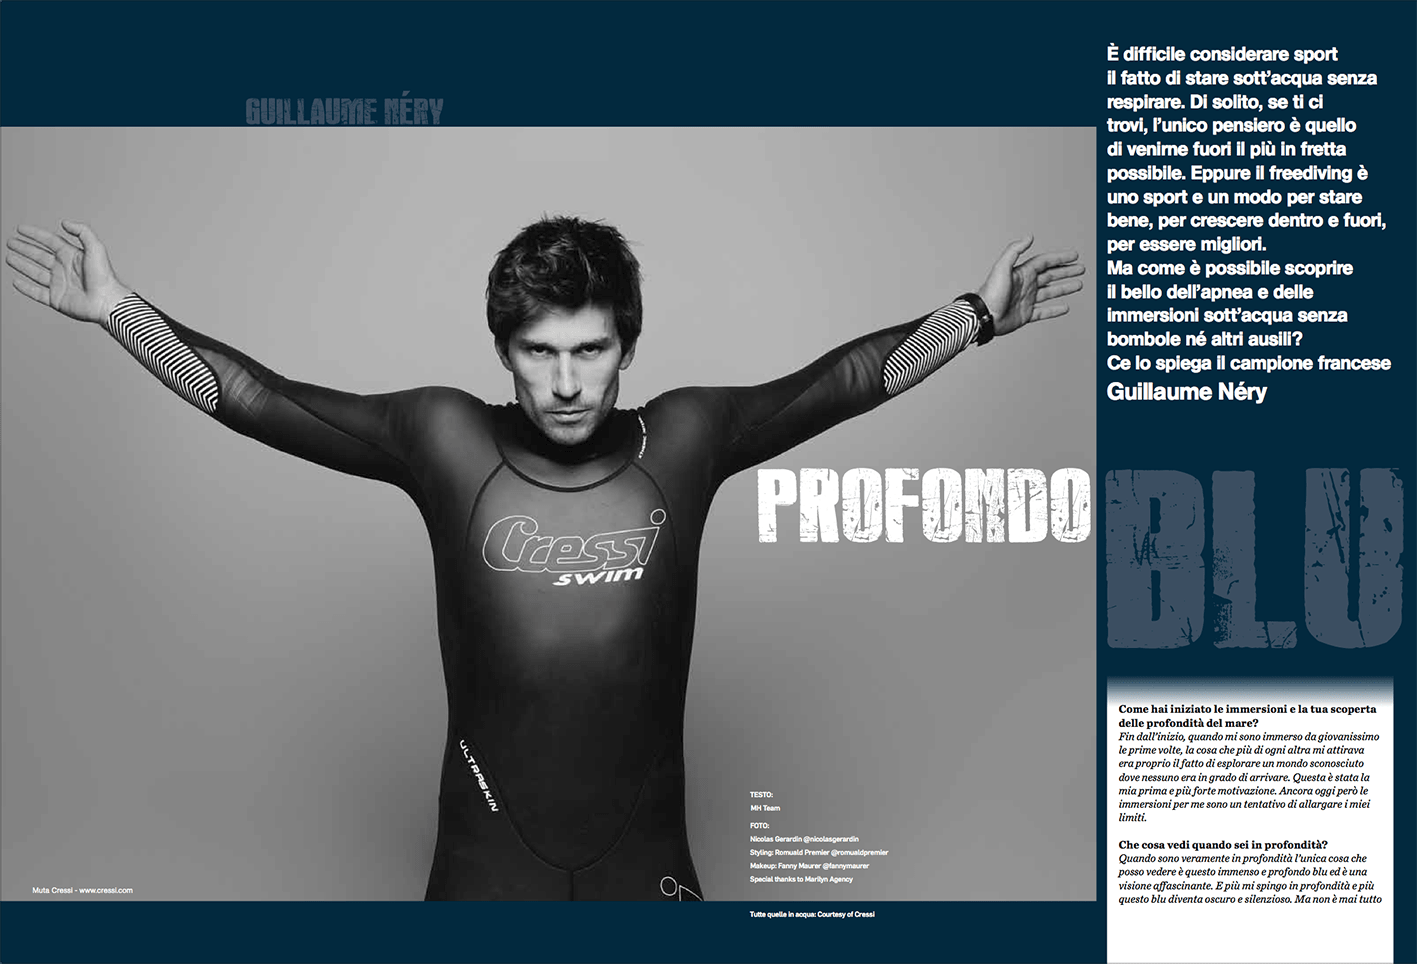 Guillaume Nery, men'shealth, magazine, italy, diving, worldchampion, Nicolas Gerardin, photography, cressi swim